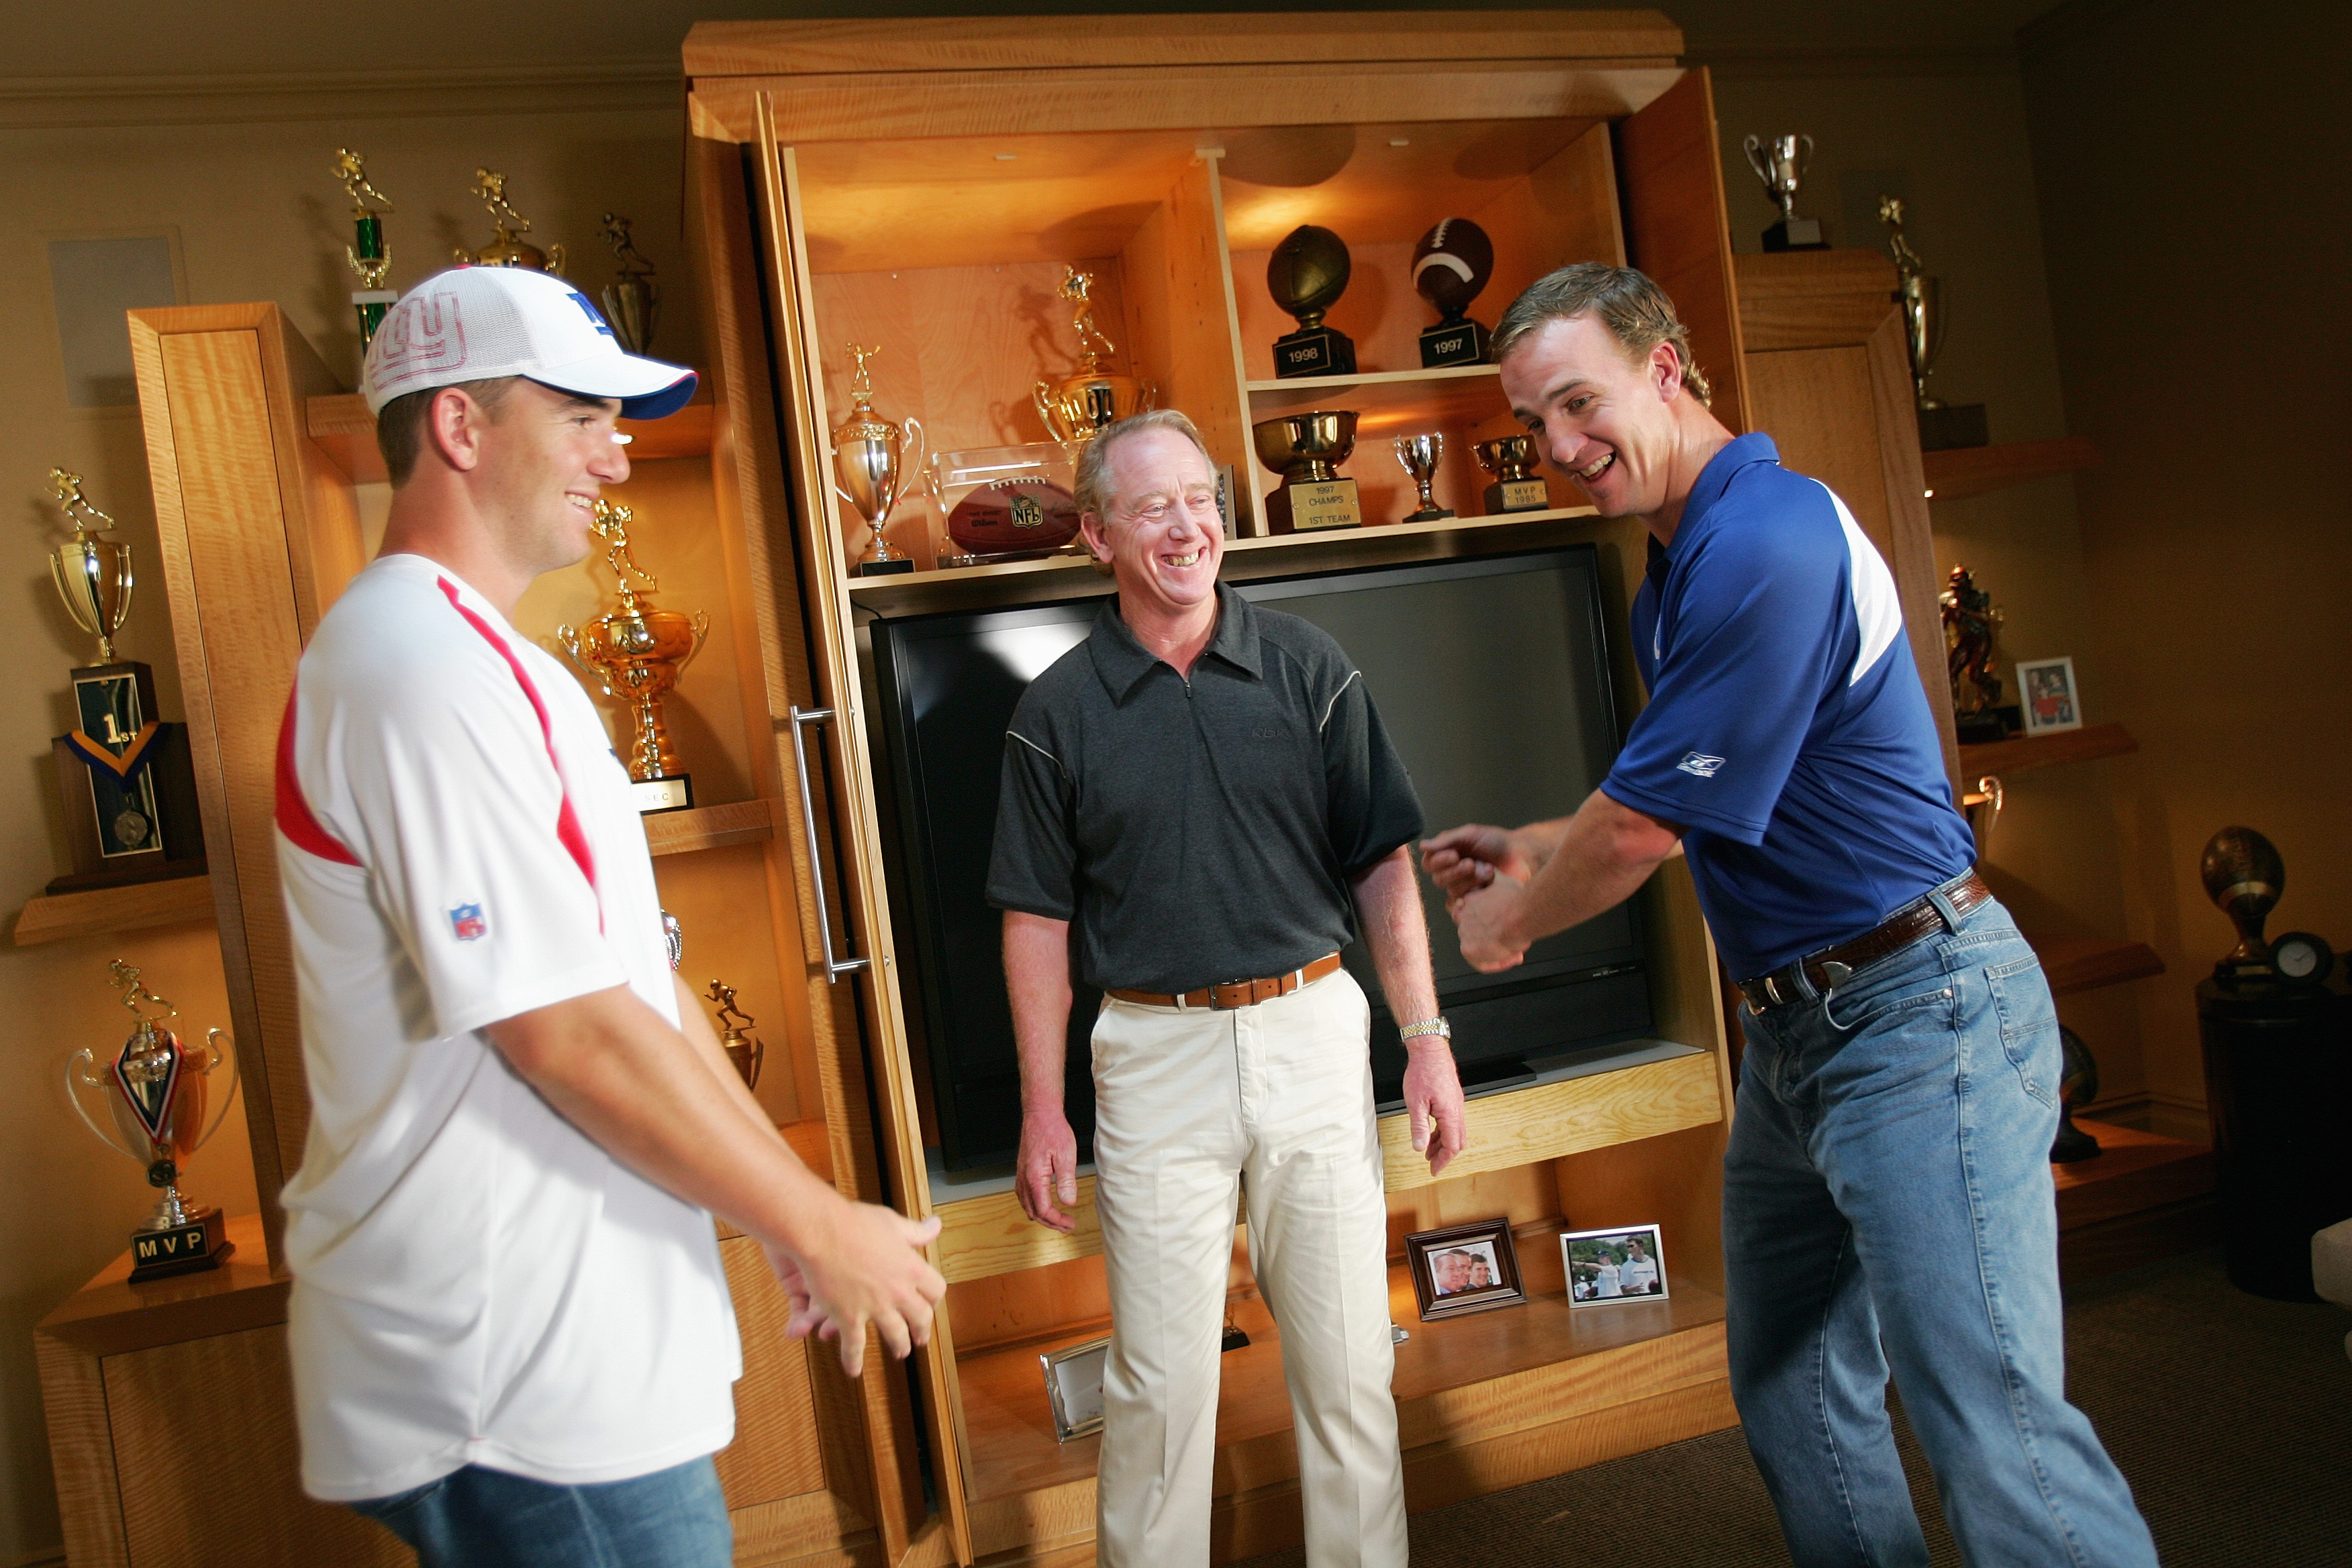 NORTH CALDWELL, NJ - JUNE 26:  (L-R) Eli, Archie and Peyton Manning on the set during a Reebok commercial shoot on June 26, 2006 in North Caldwell, New Jersey.   (Photo by Ezra Shaw/Getty Images for Reebok)